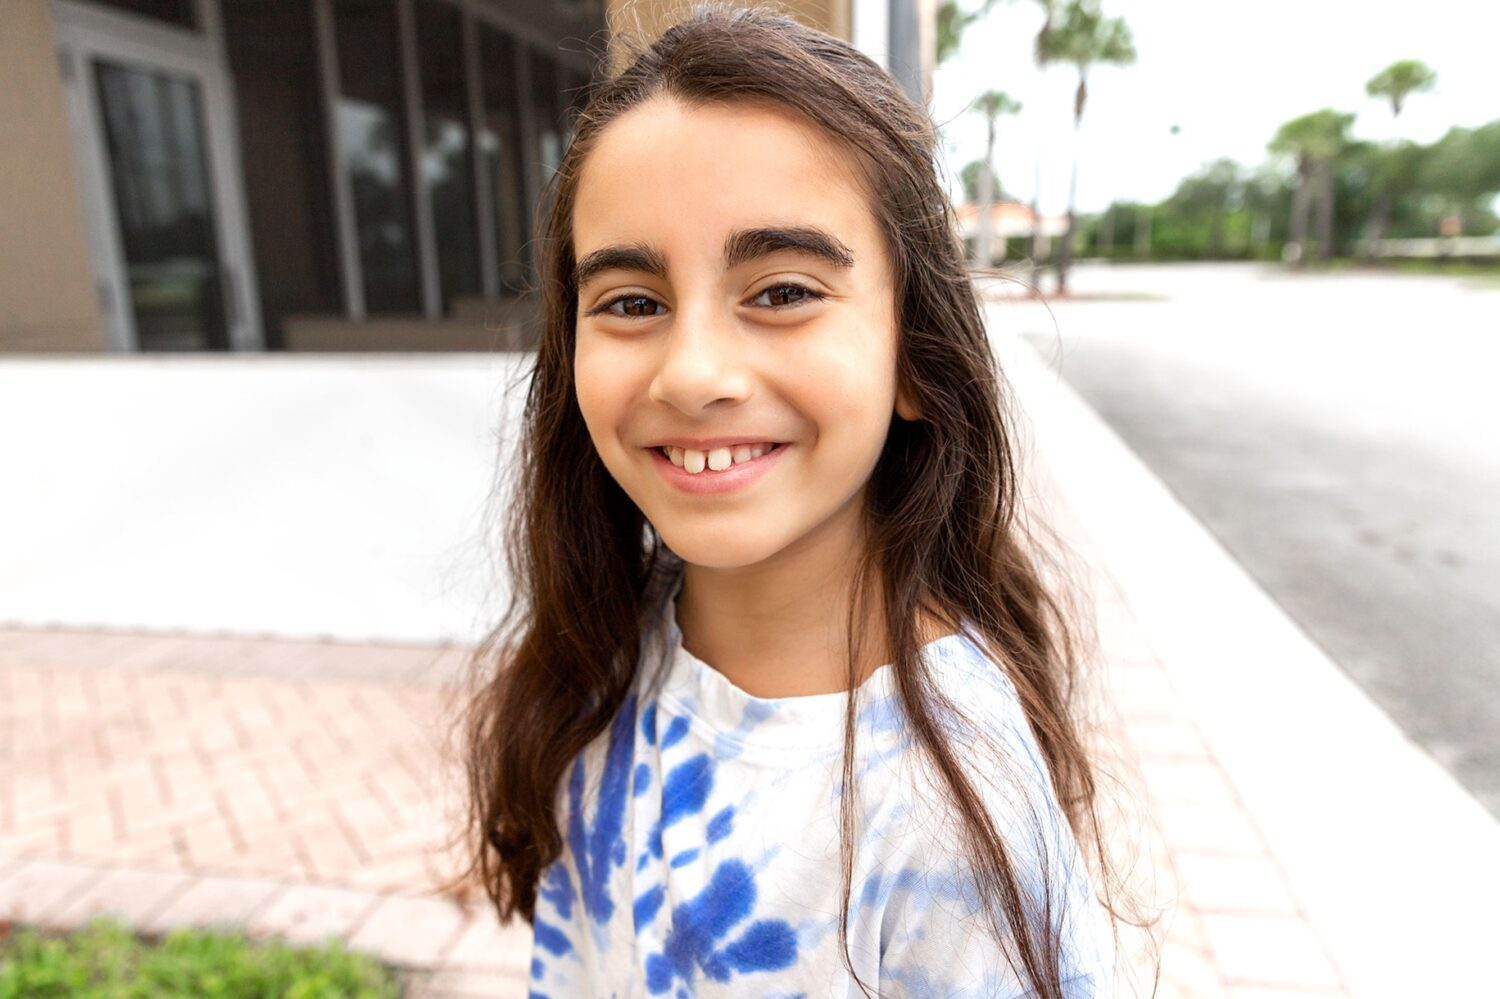 smiling girl our journey with ADHD